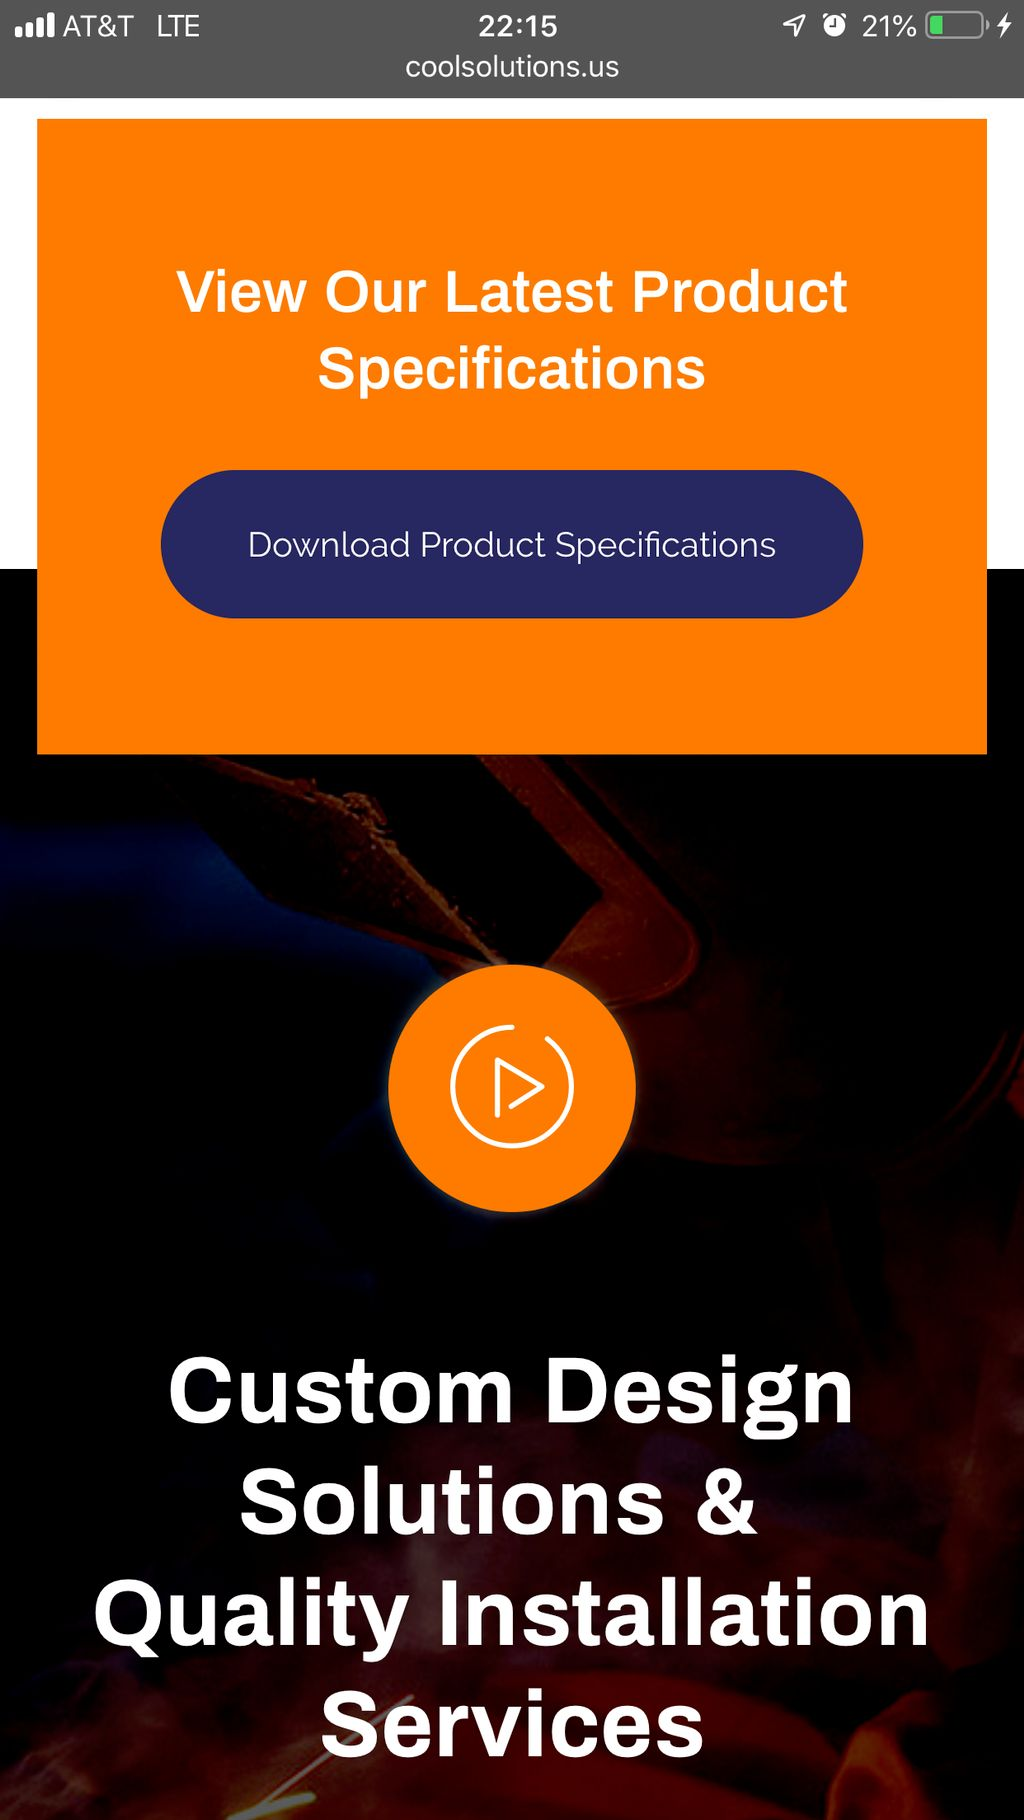 Website Redesign for Cool Solutions